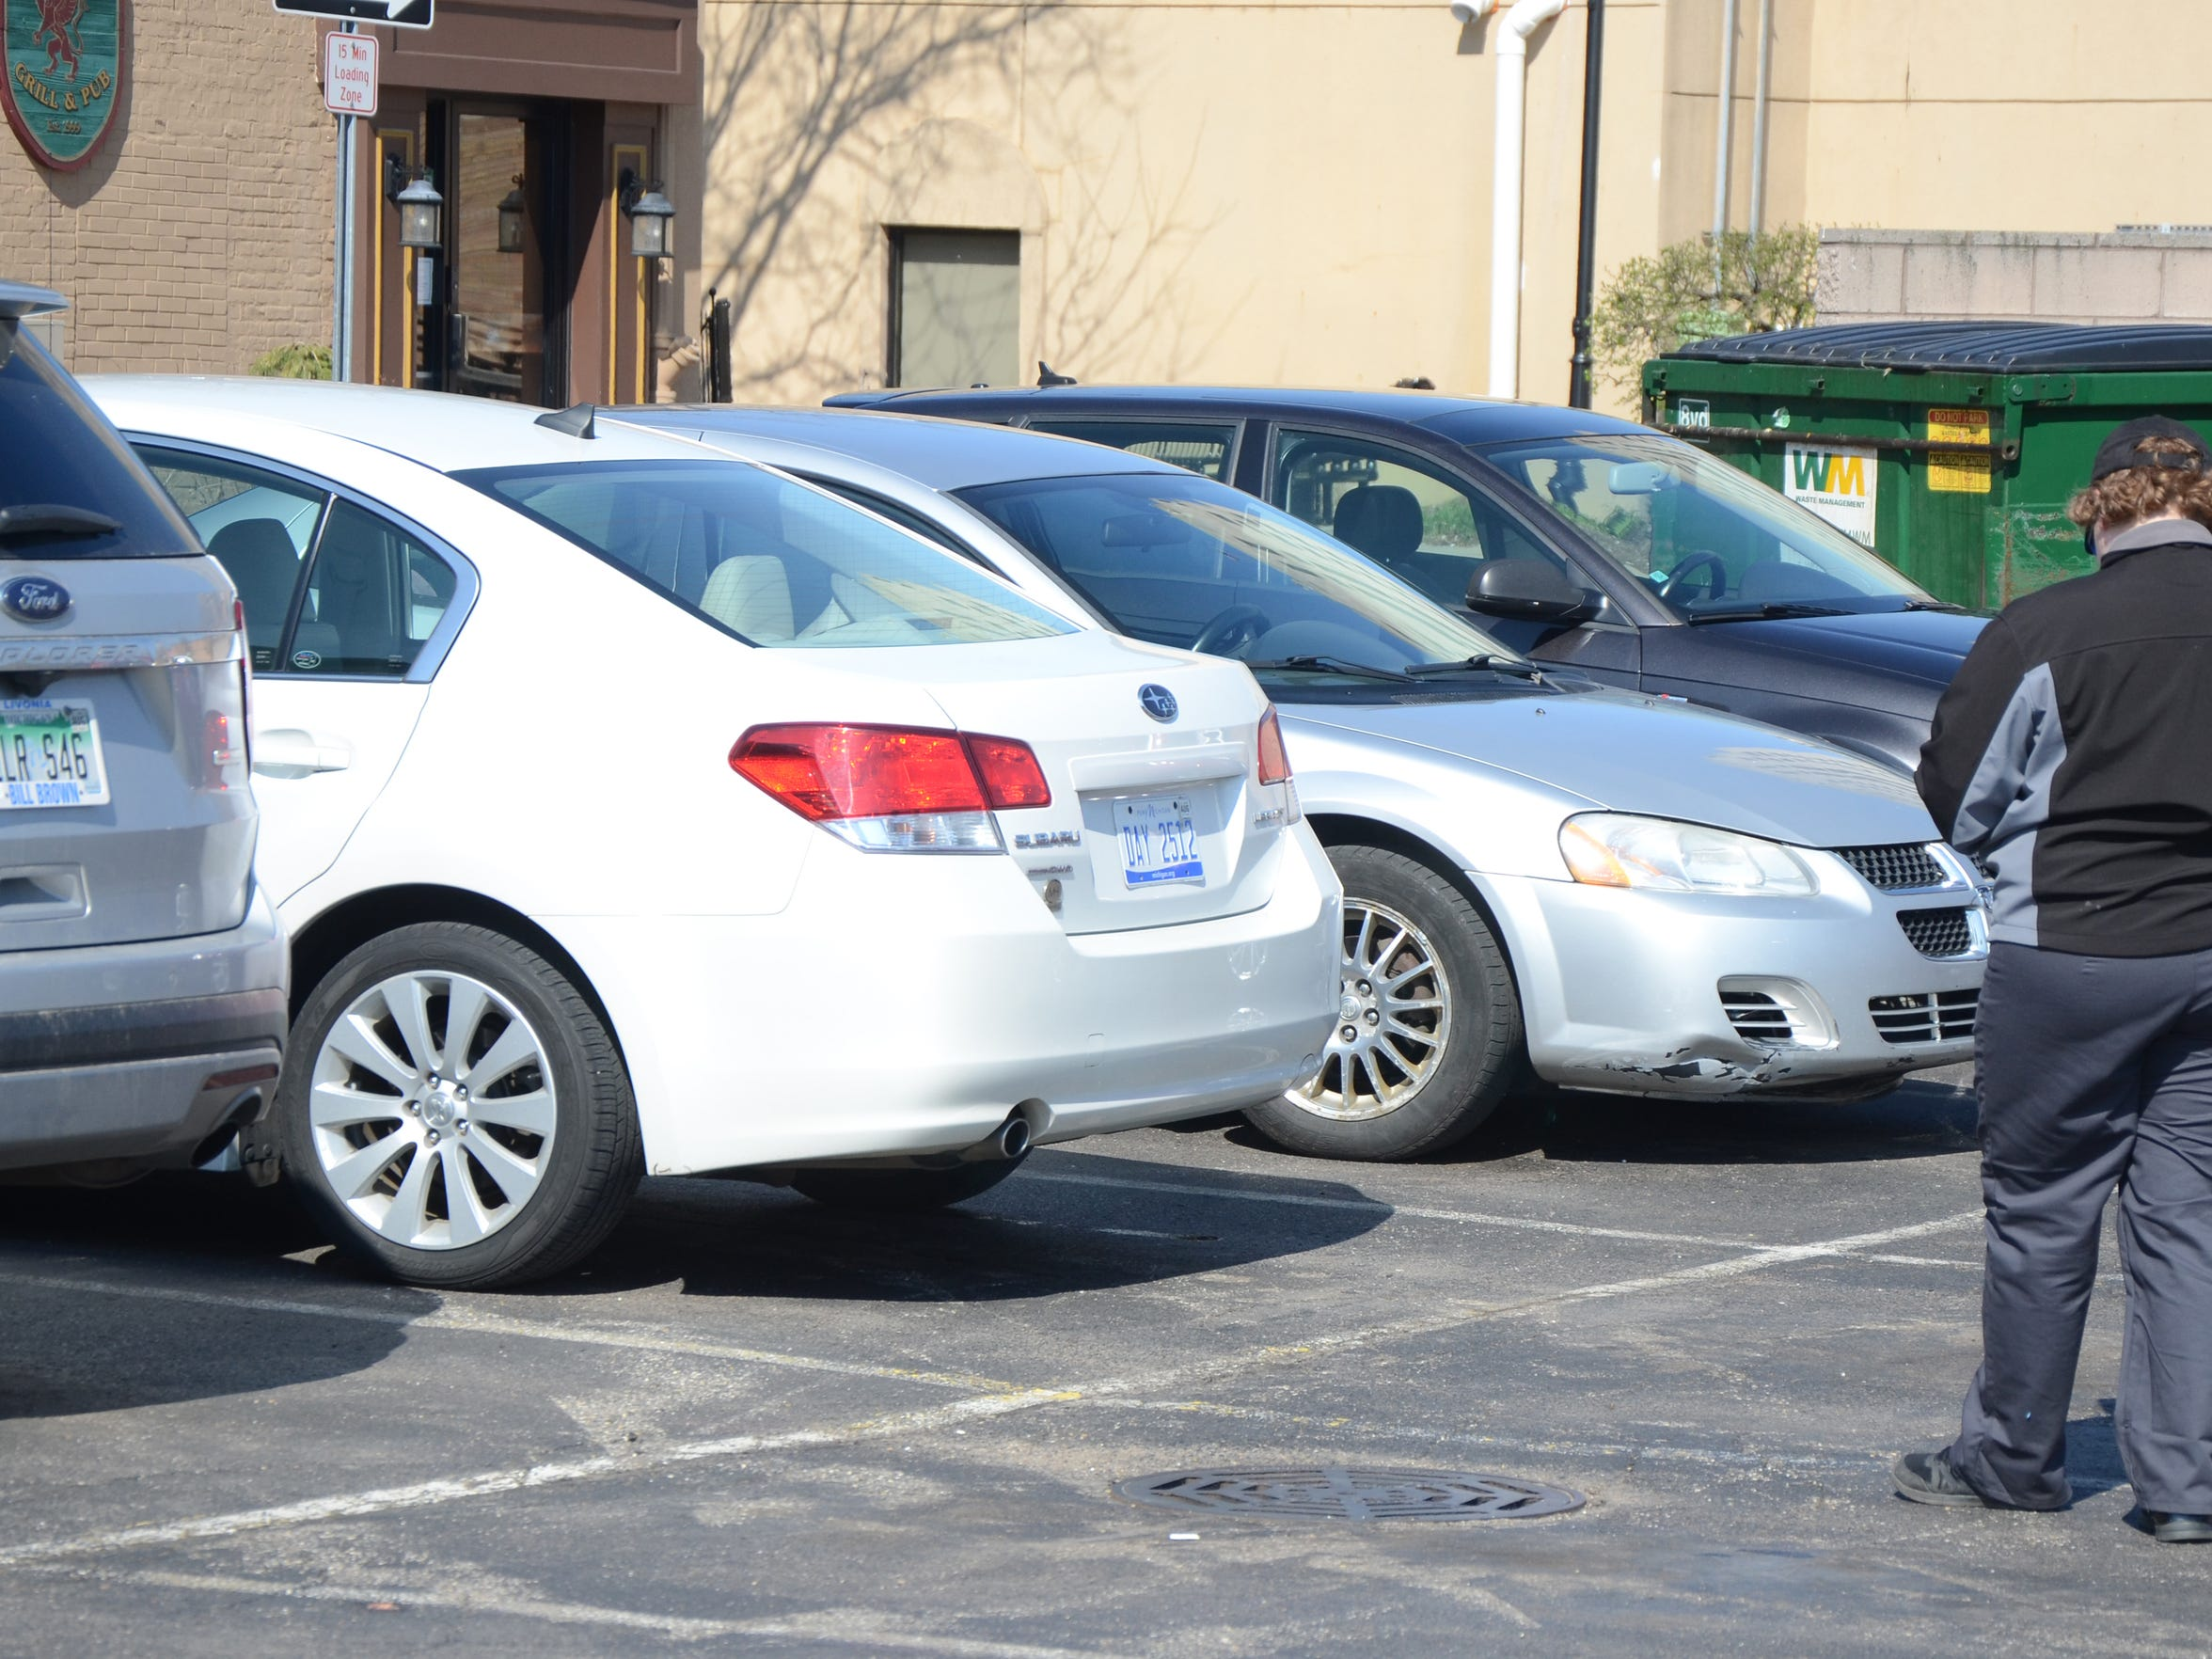 An employee of Ampco Parking checks cars in the State Street parking lot.